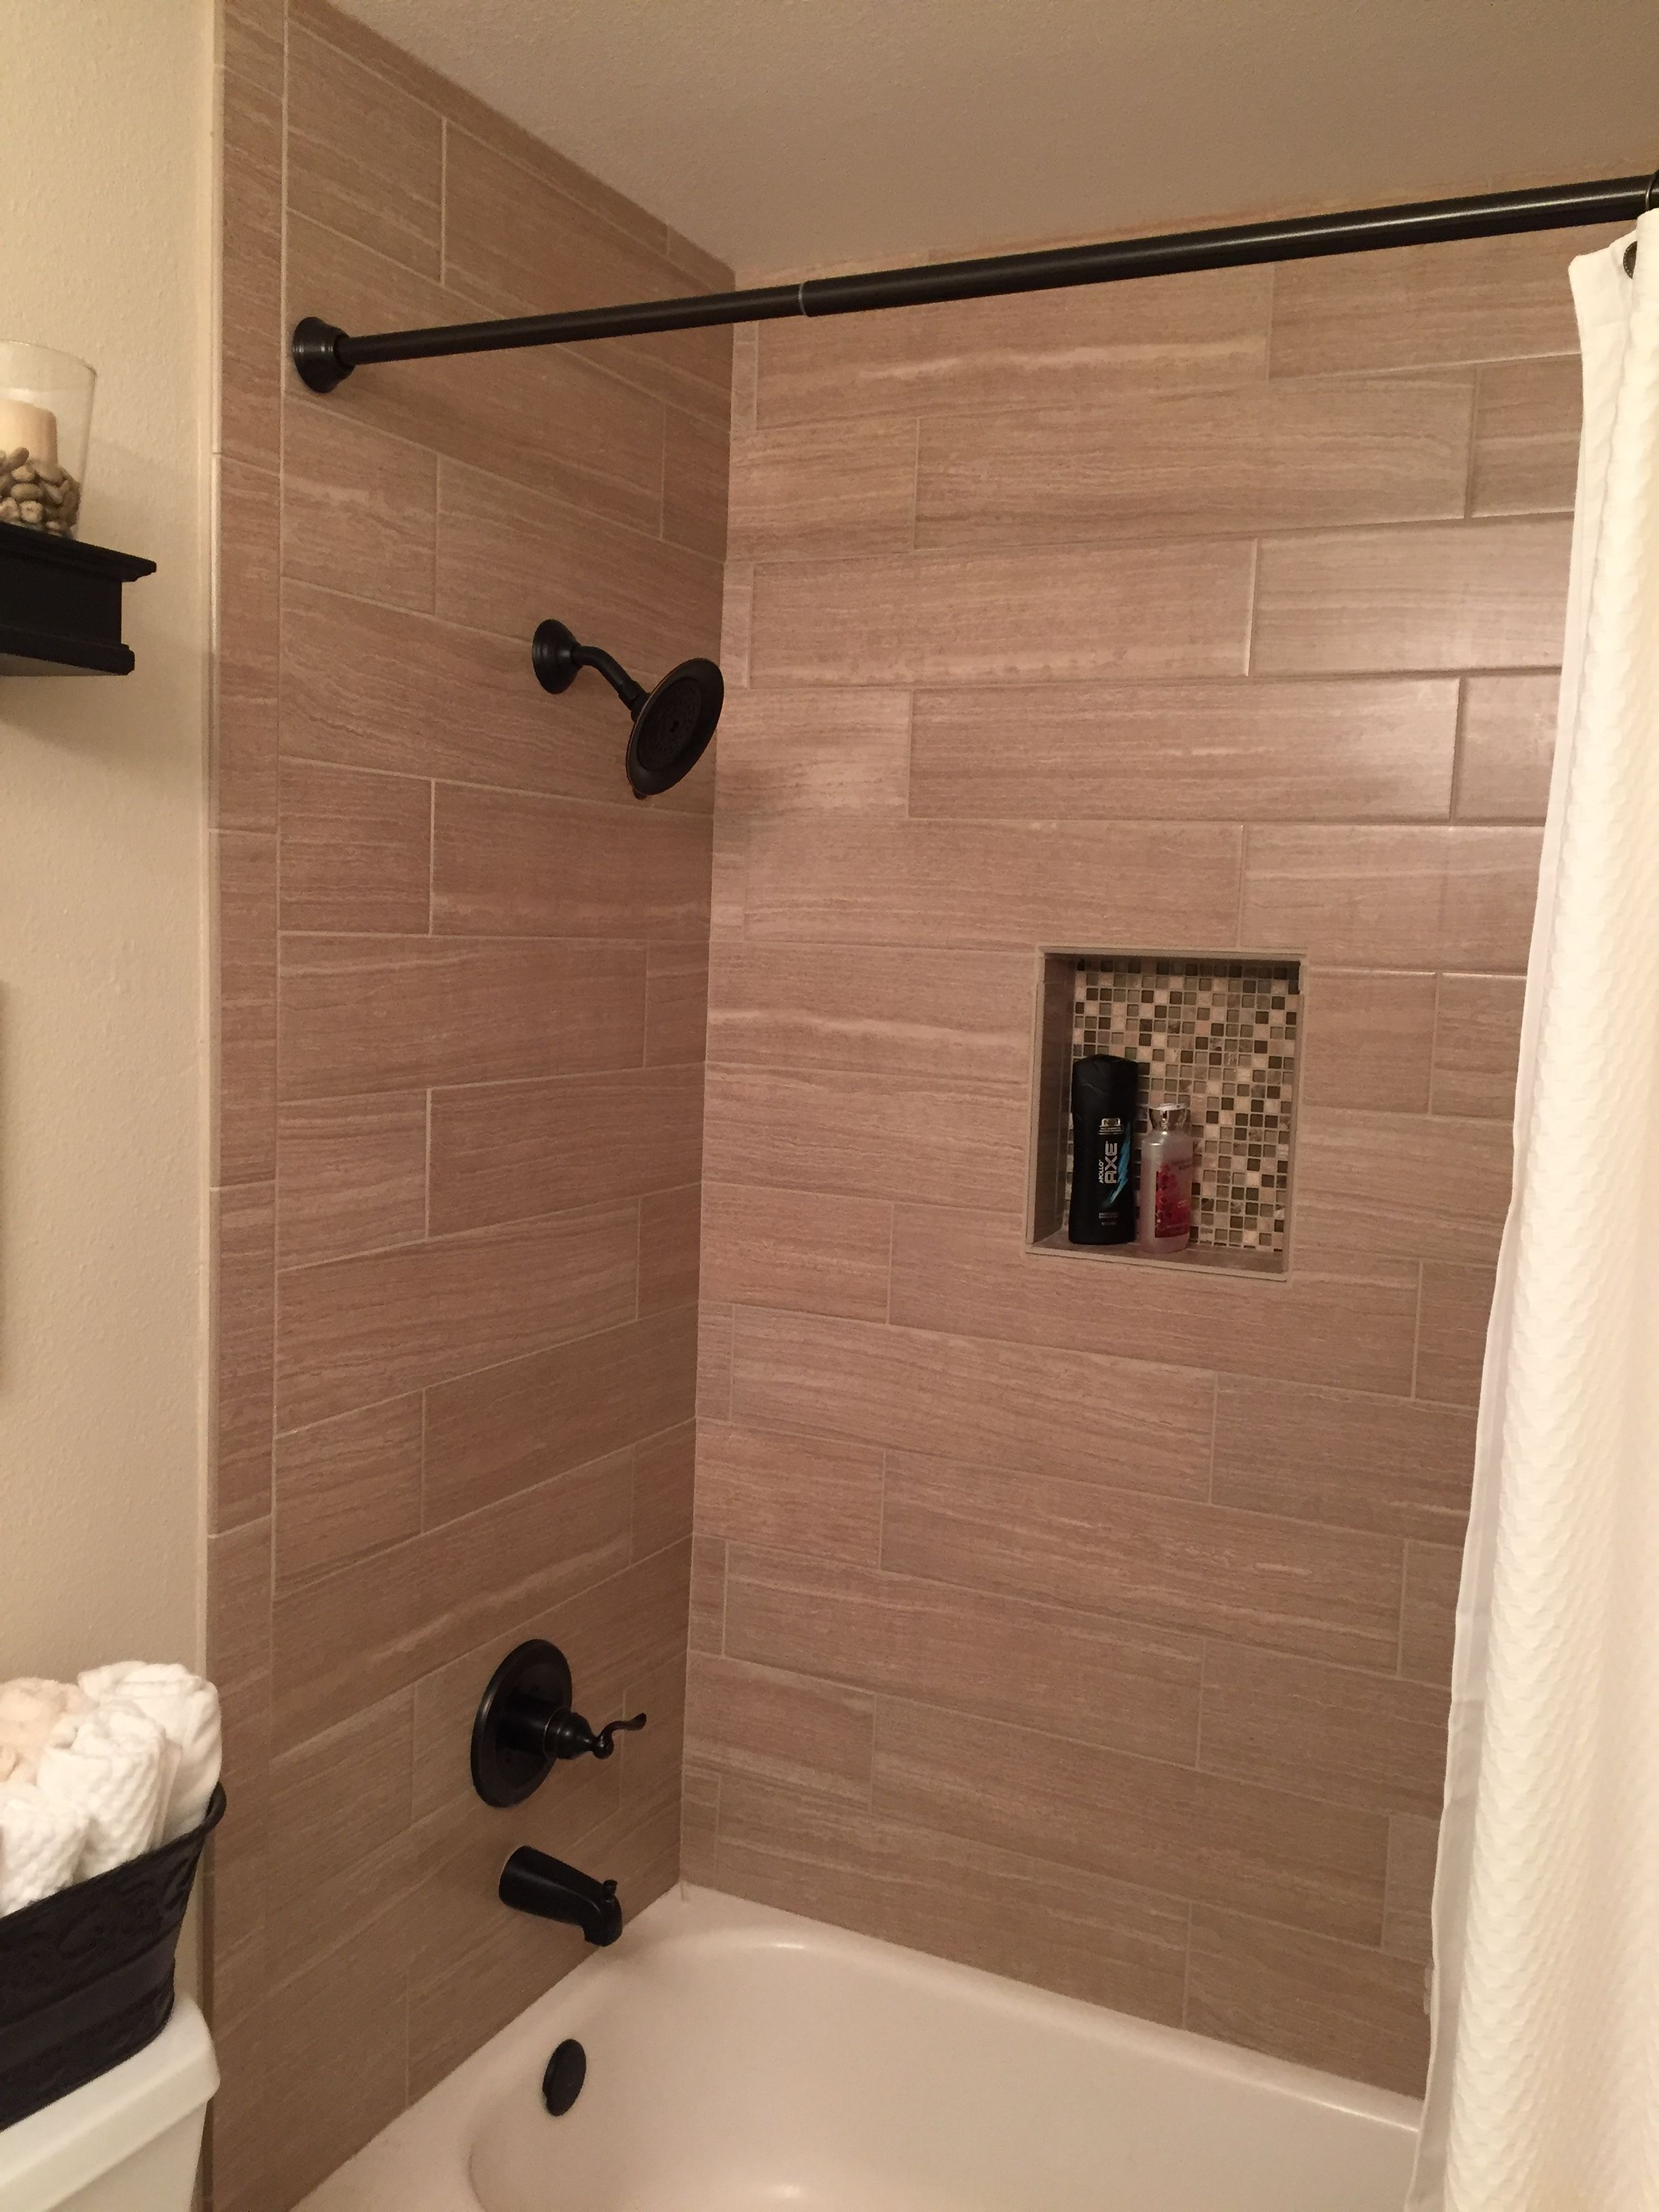 Bathroom tile to ceiling - Find This Pin And More On Bathroom Floor To Ceiling Tile